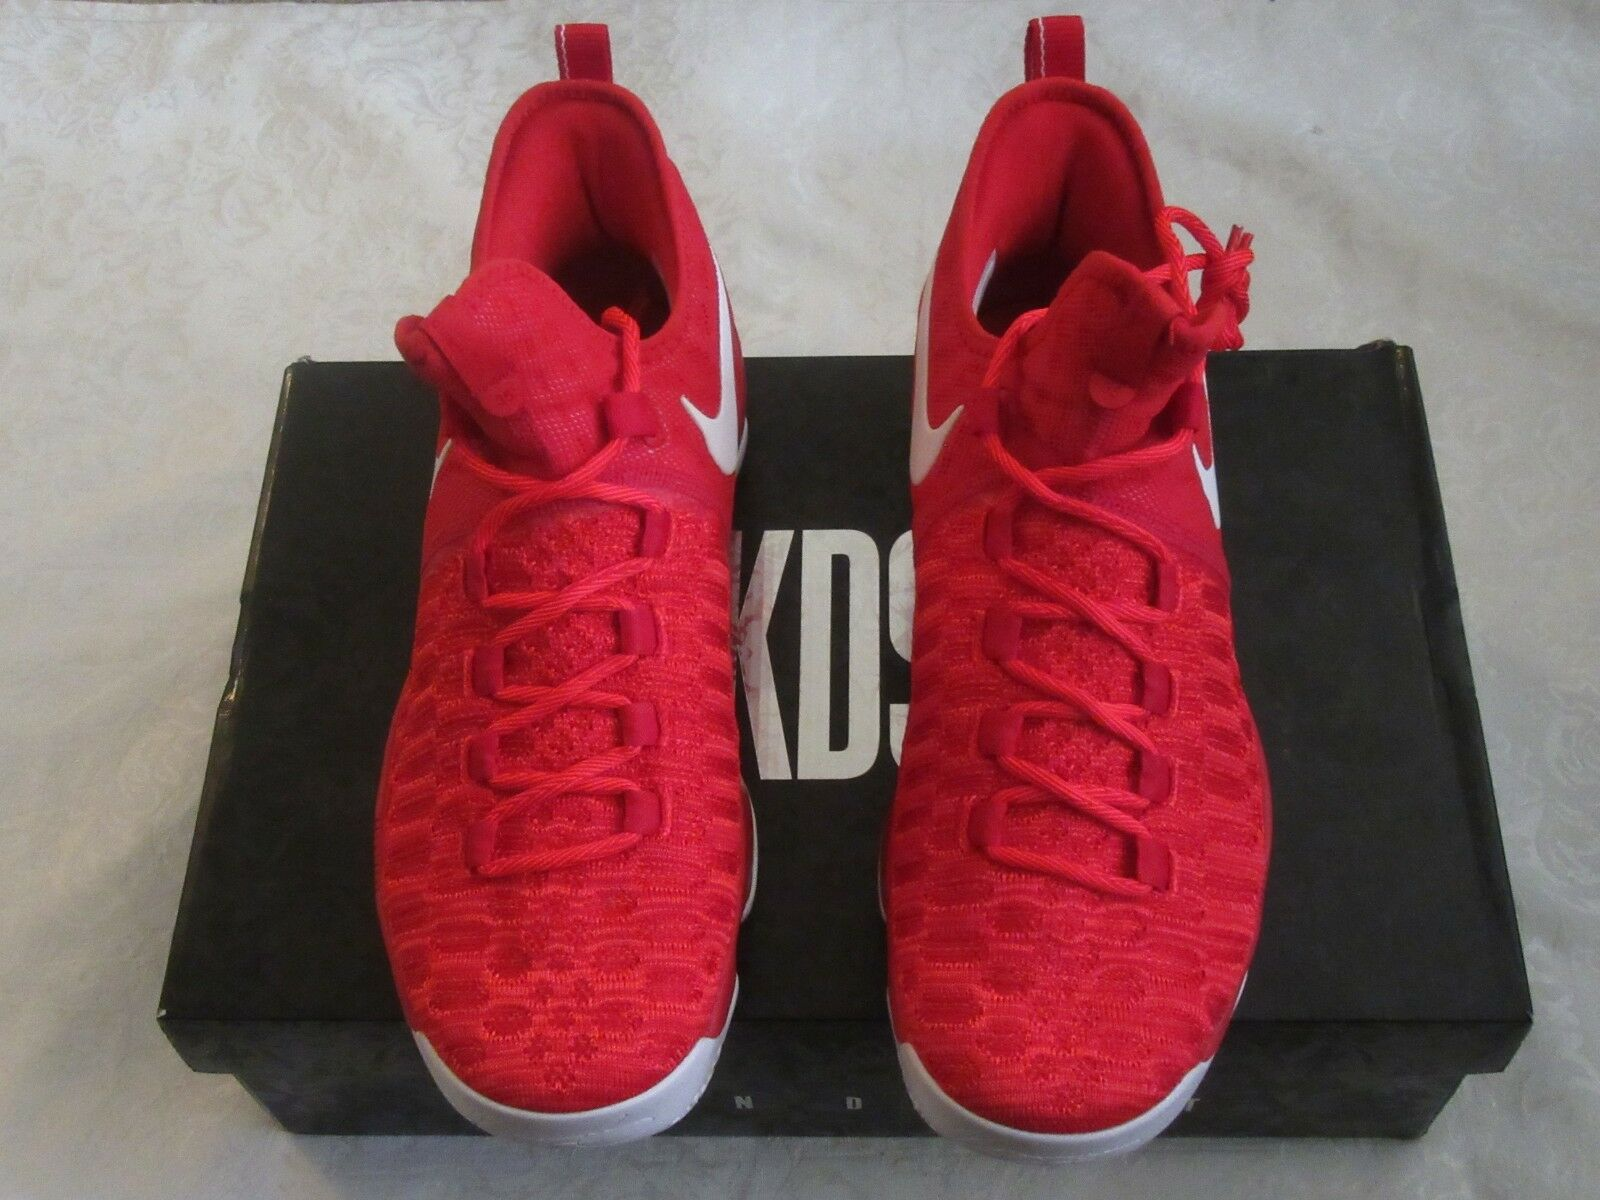 Nike Zoom KD 9 KD9 KD9 KD9 University Red White 843392 611 Men US Size 11 Sneakers e495e1